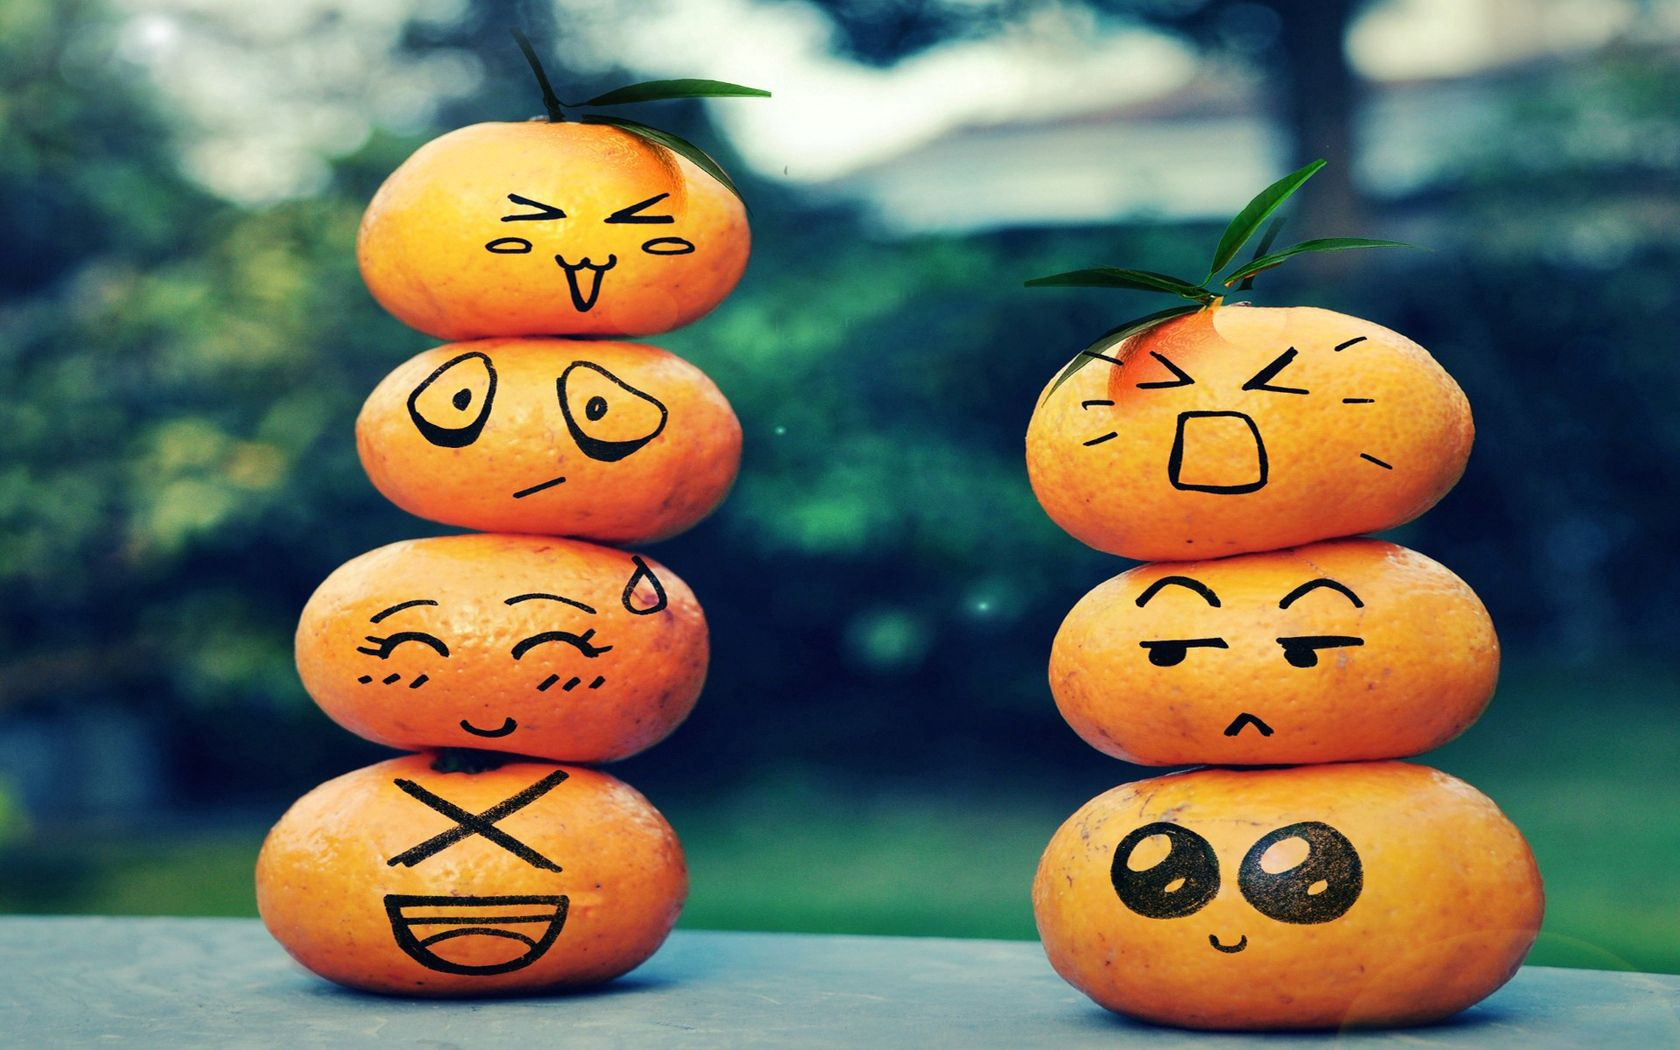 83608 download wallpaper Fruits, Leaves, Miscellanea, Miscellaneous, Table, Bokeh, Boquet, Faces, Smileys, Emoticons screensavers and pictures for free